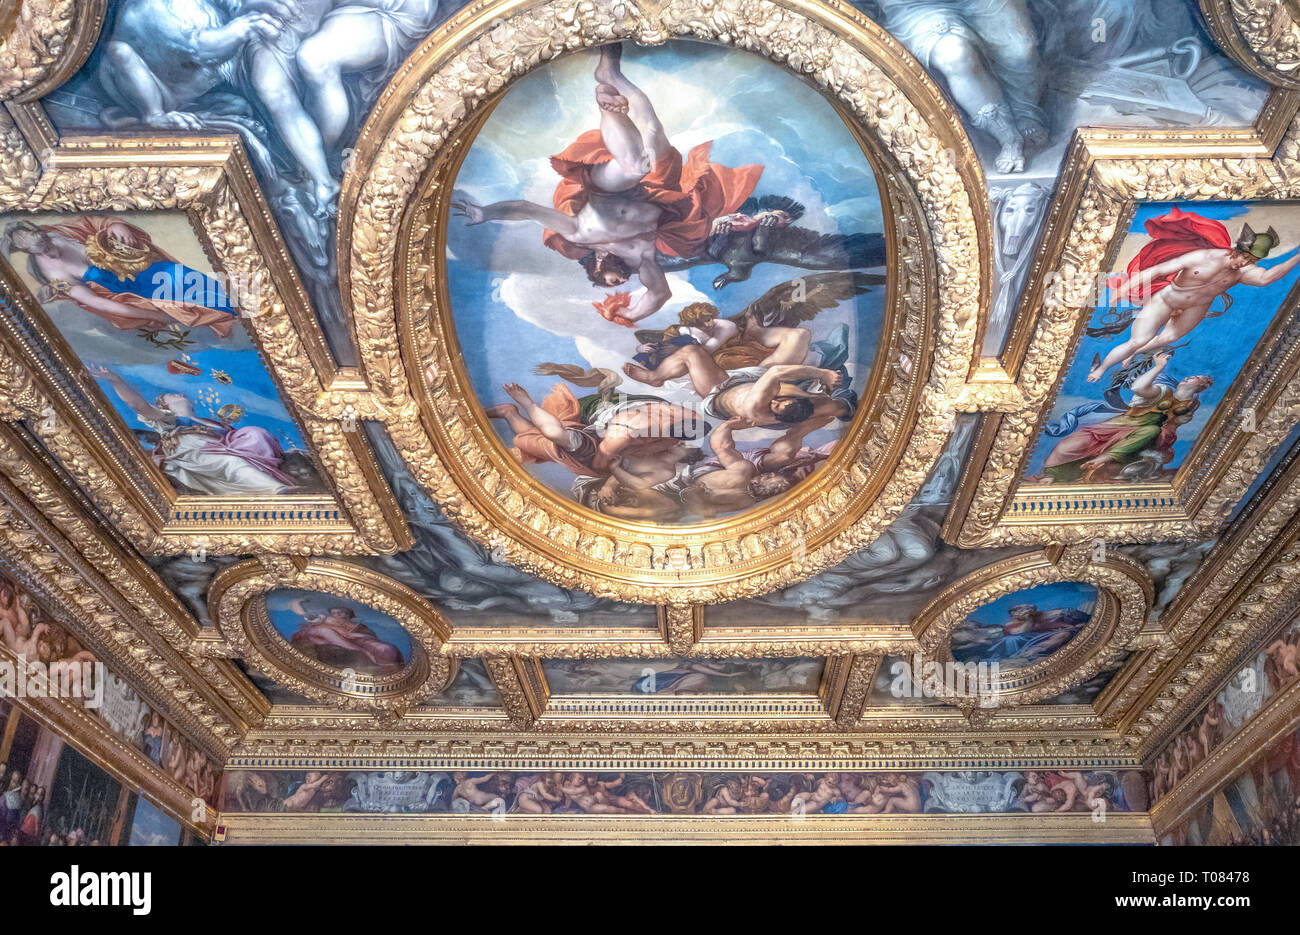 Italy, Venice, Ducal palace, detail of the ceiling of the Council of Tens Chamber - Stock Image